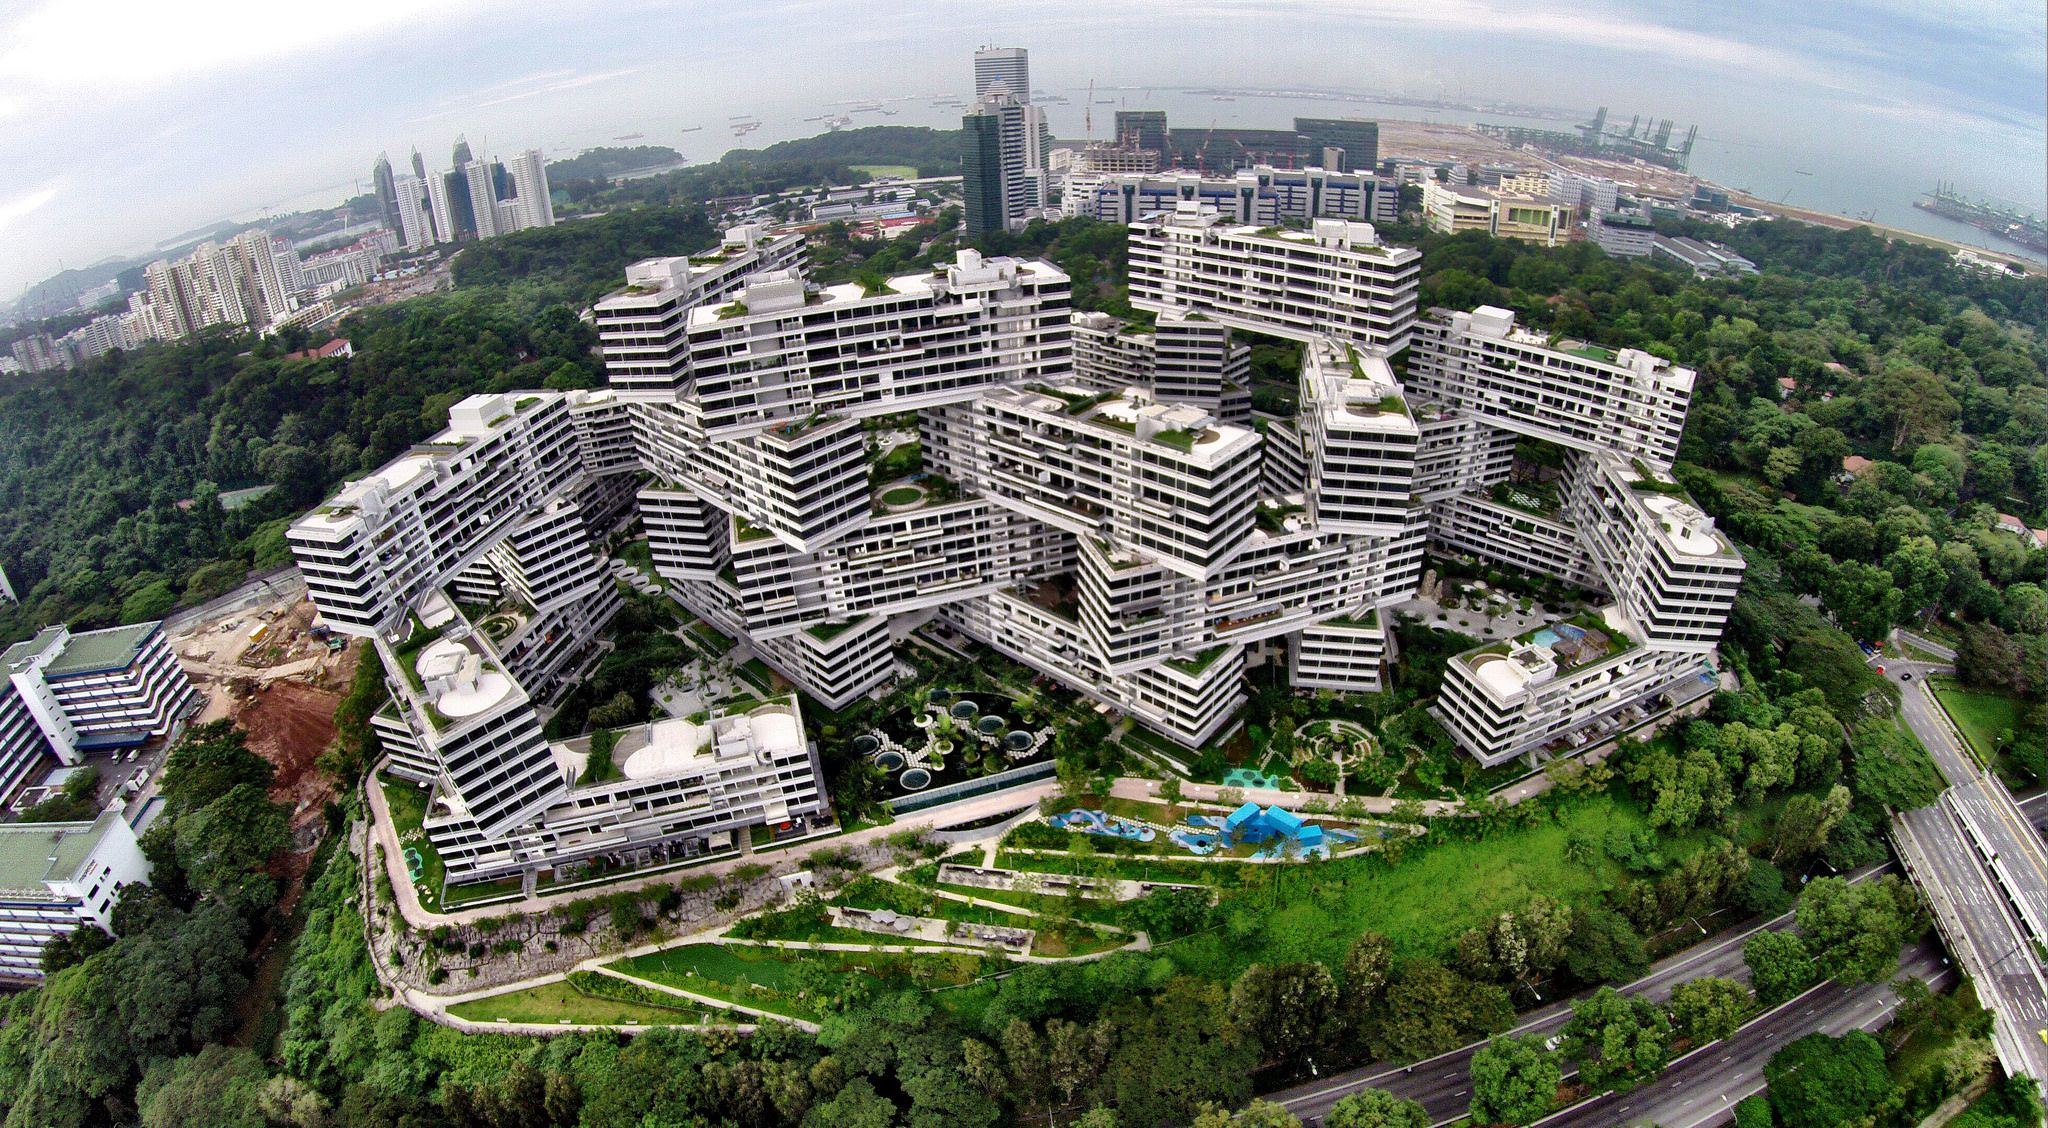 The Interlace Singapore [2048x1128] wallpaper background for 2048x1128